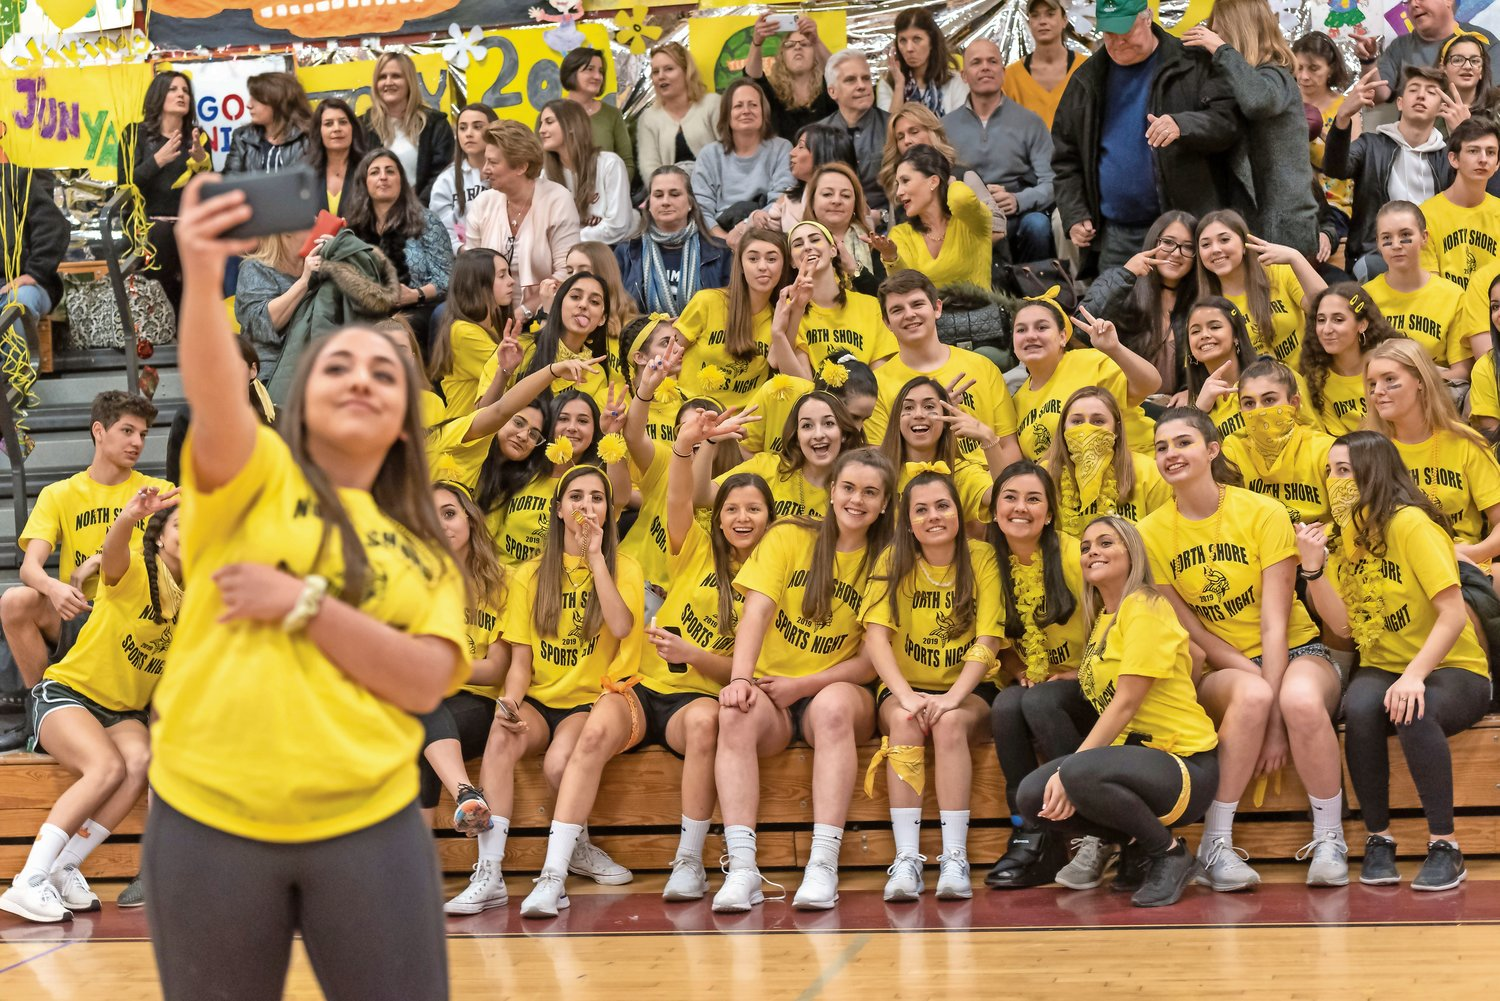 During a pause in the action at North Shore High School's annual Sports Night event on Feb. 28, the junior class took a group selfie, which captured all the fun and friendly competition the night had to offer.